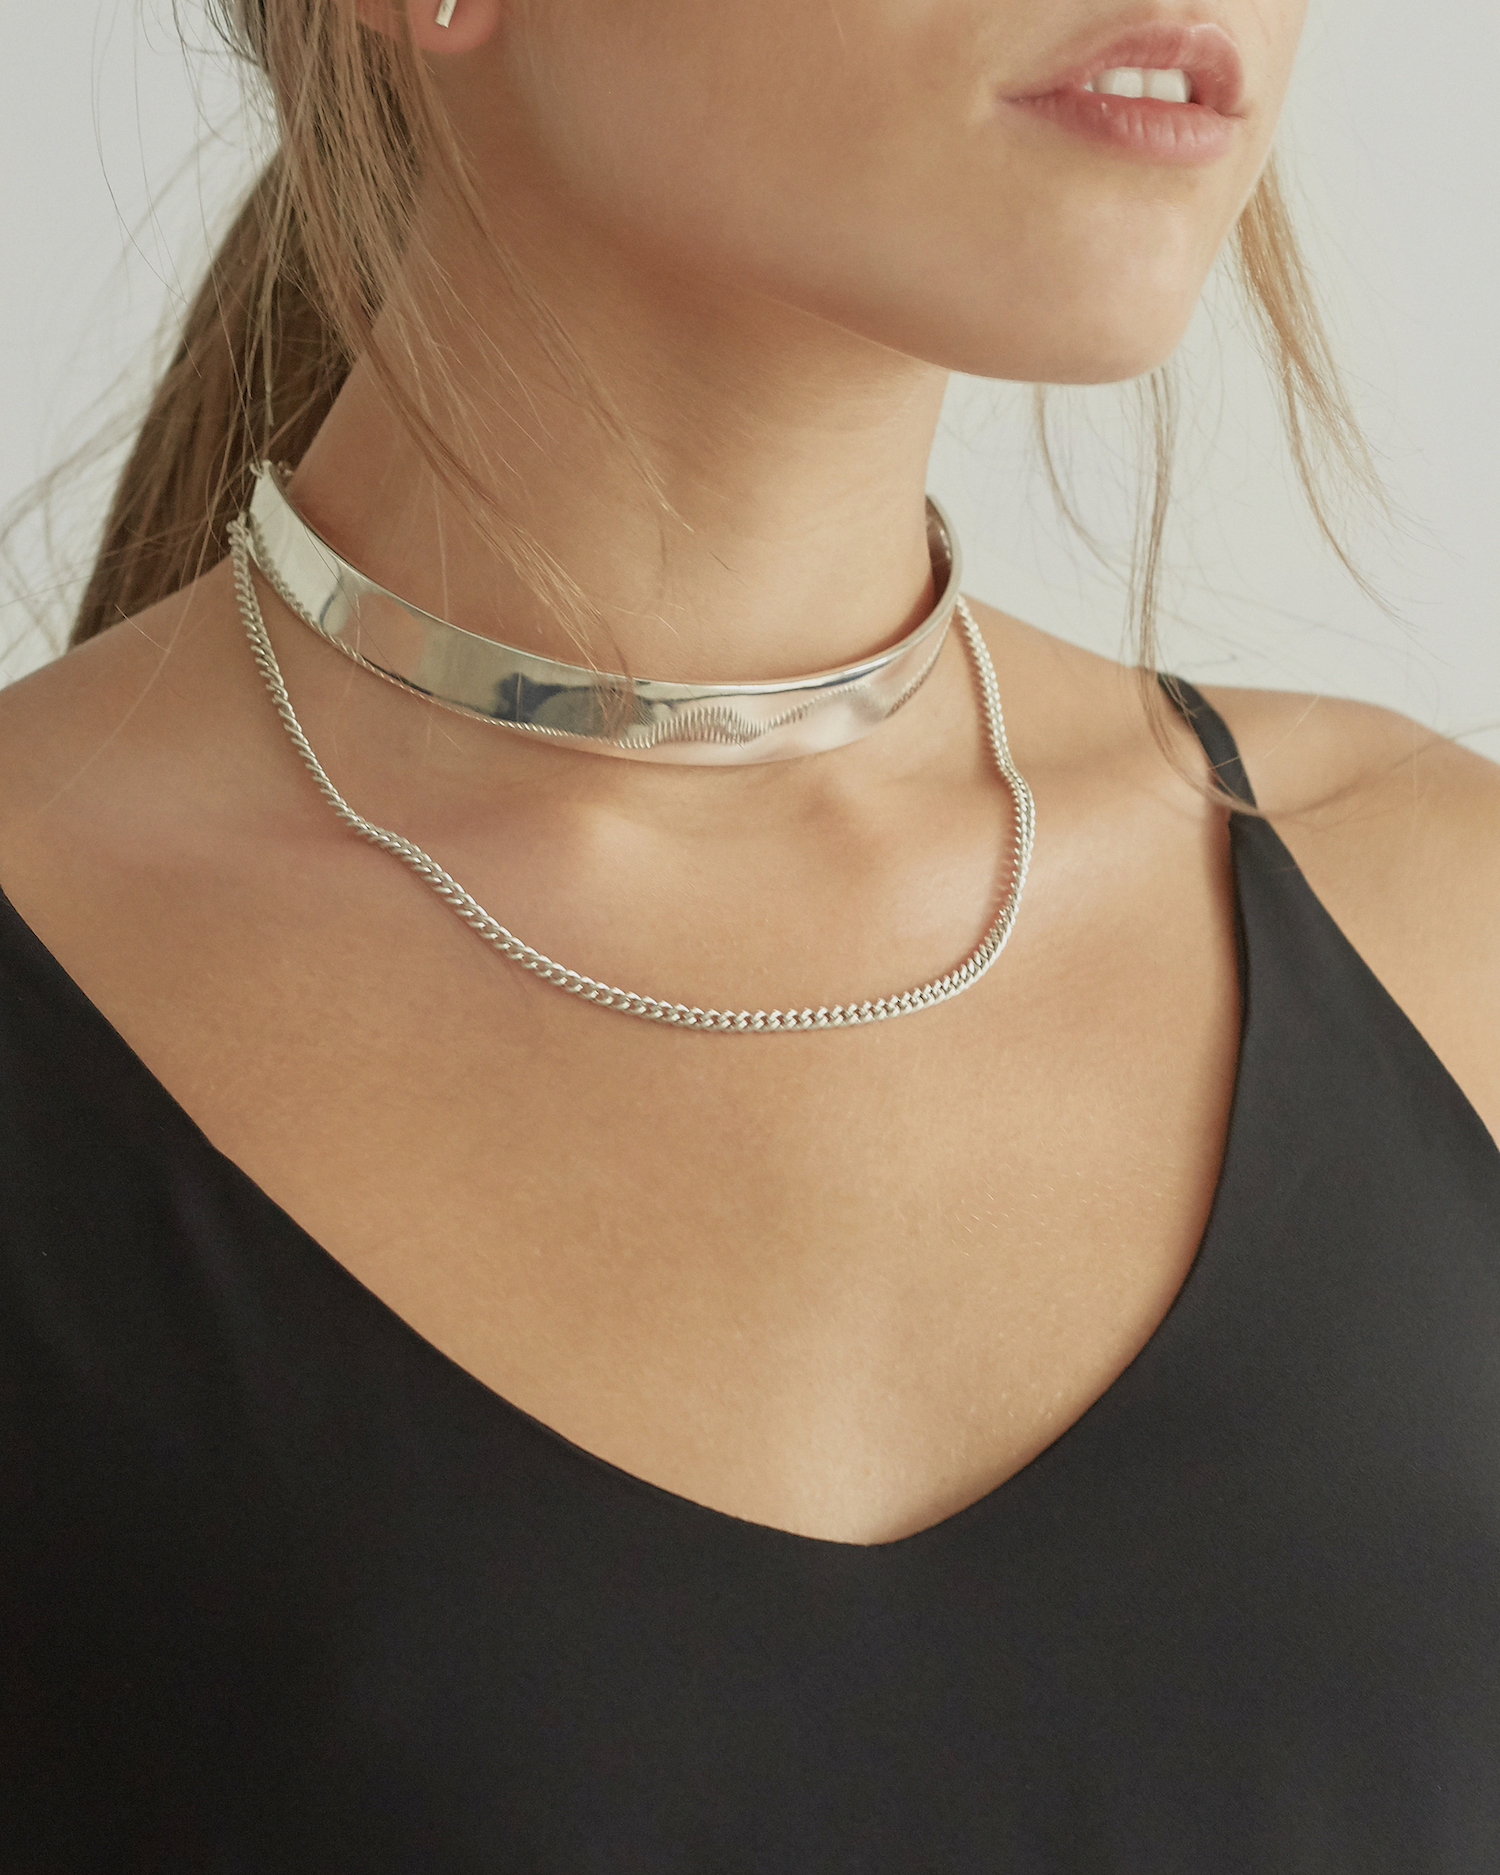 NEW! Limited edition Foundation Choker - available in sterling silver and 18k gold-plated